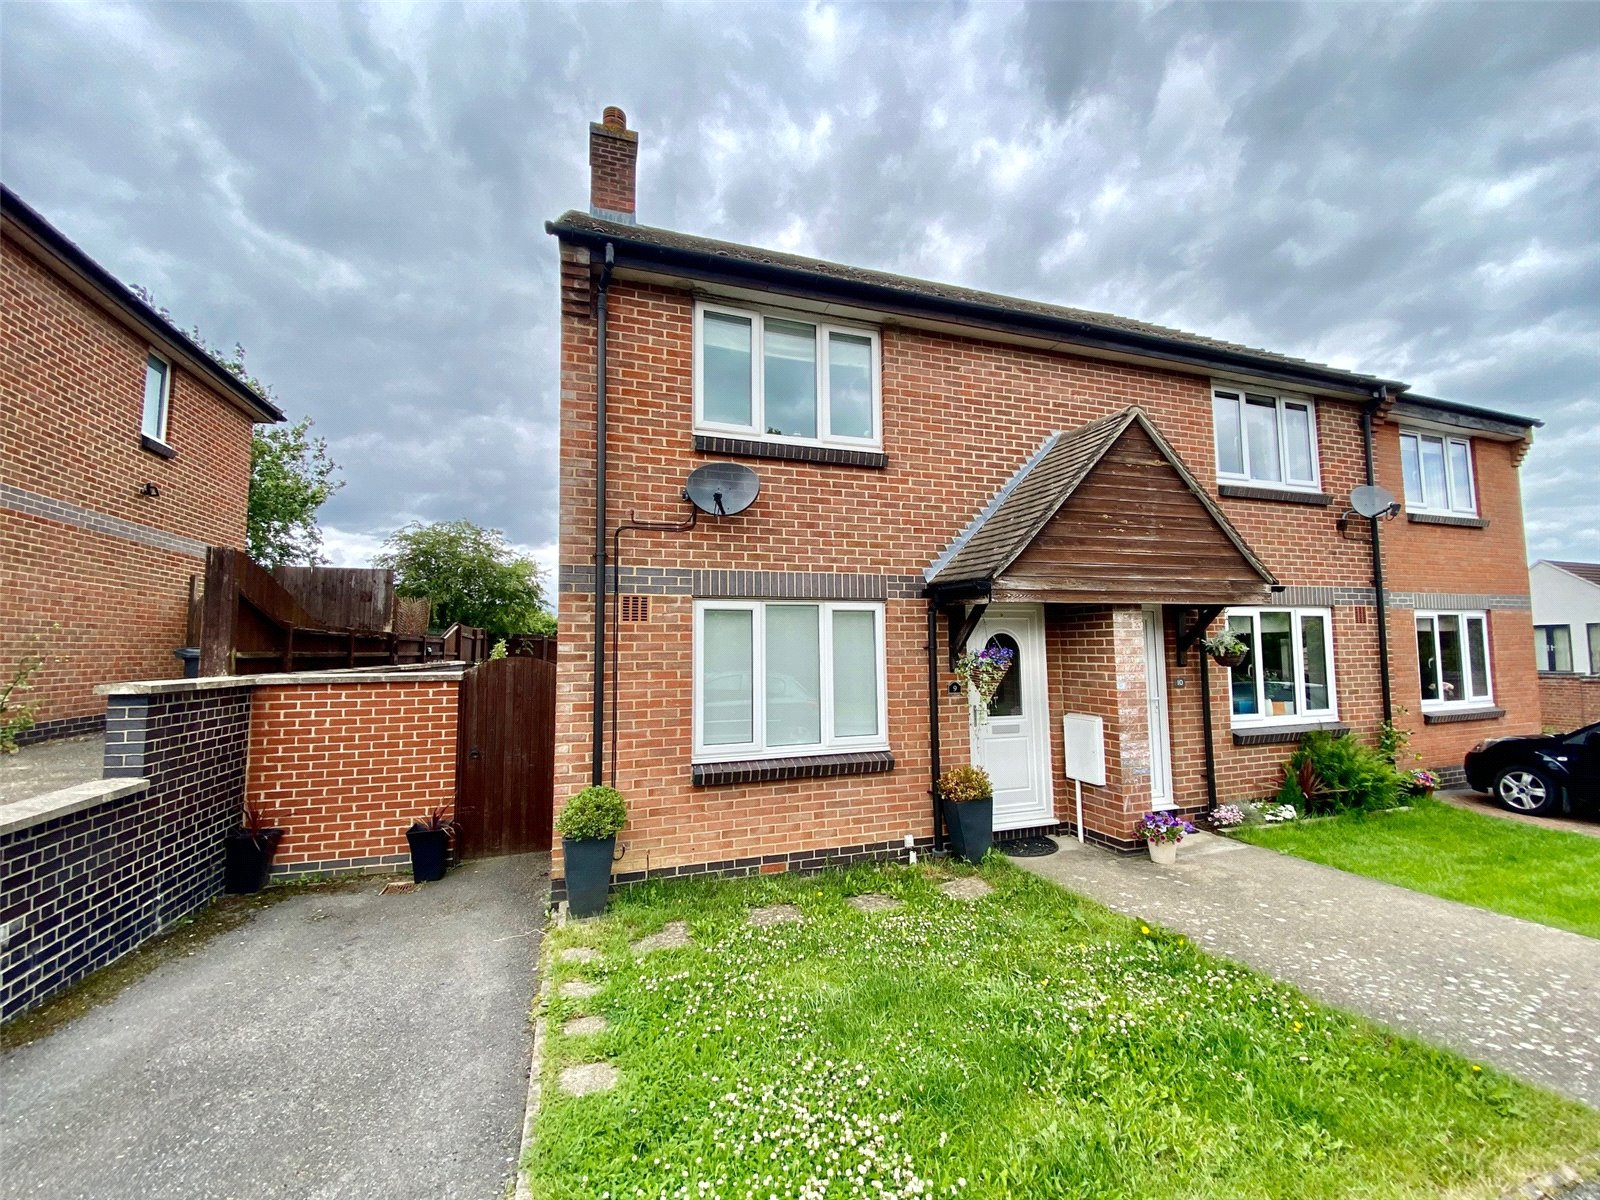 2 bed house for sale in Field Close, Abbotsley  - Property Image 1